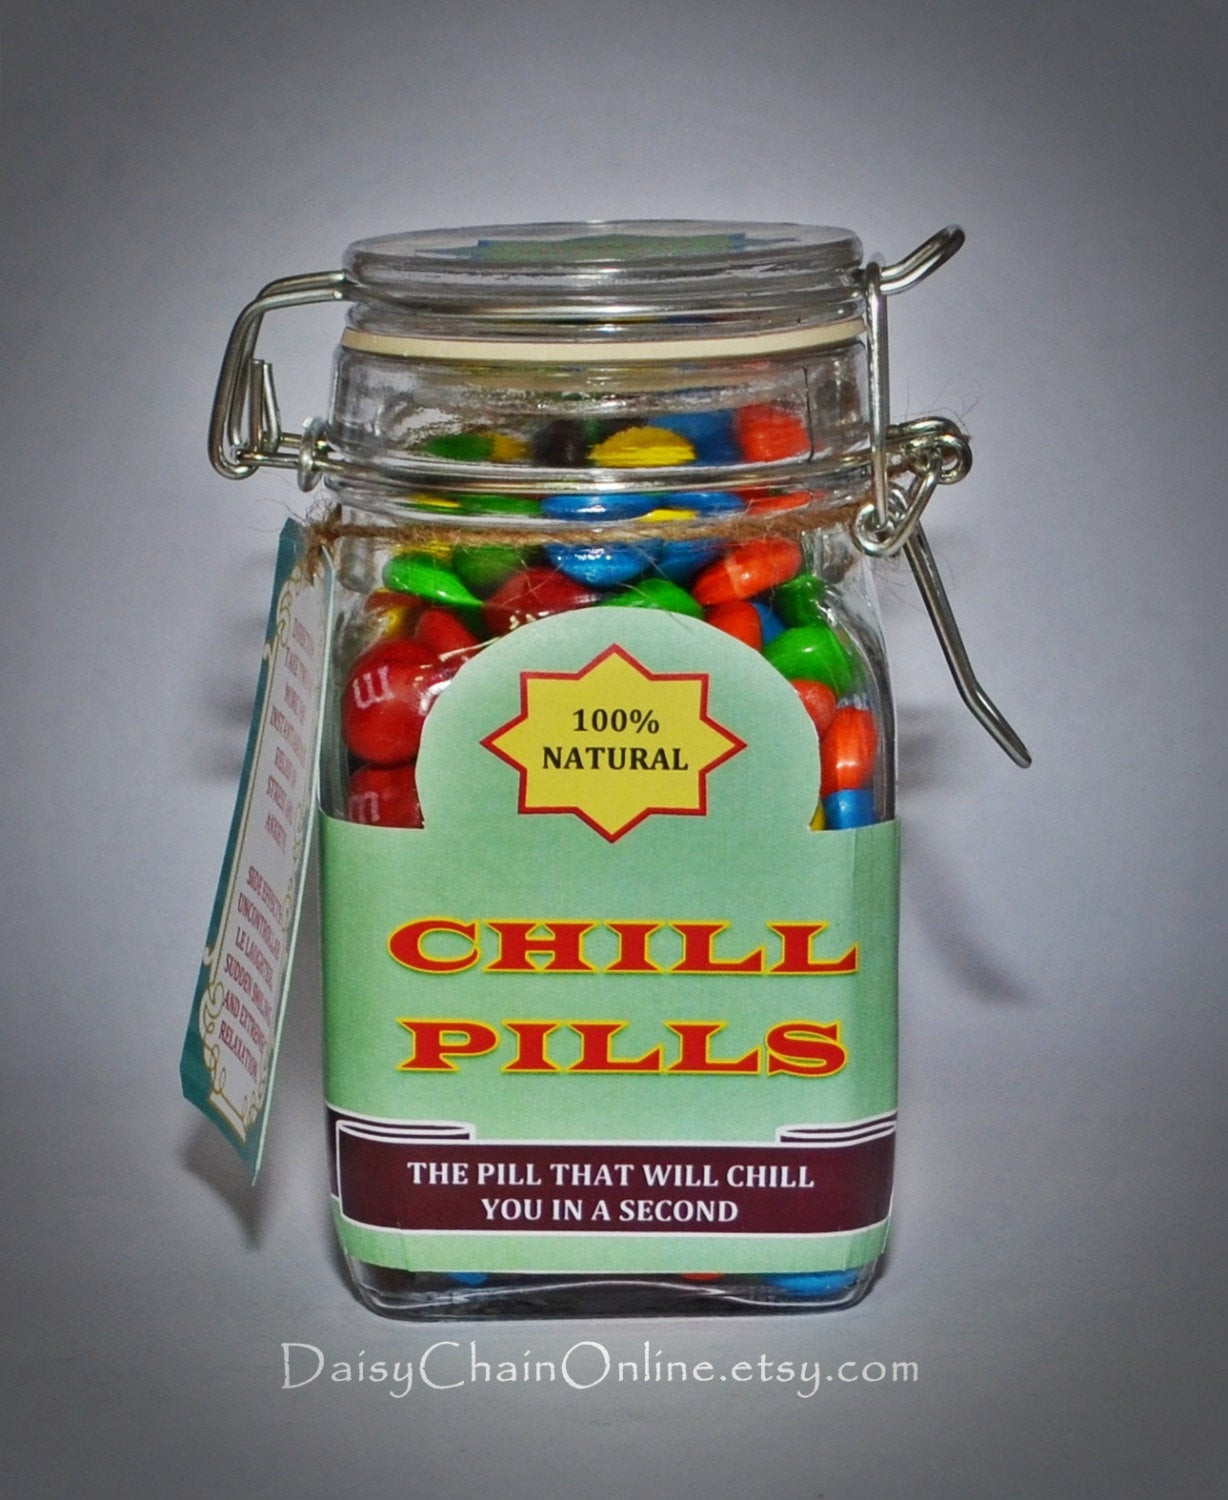 Best Gag Gift Ideas  Best Gag Gift Chill Pill Funny Gift for by DaisyChain line